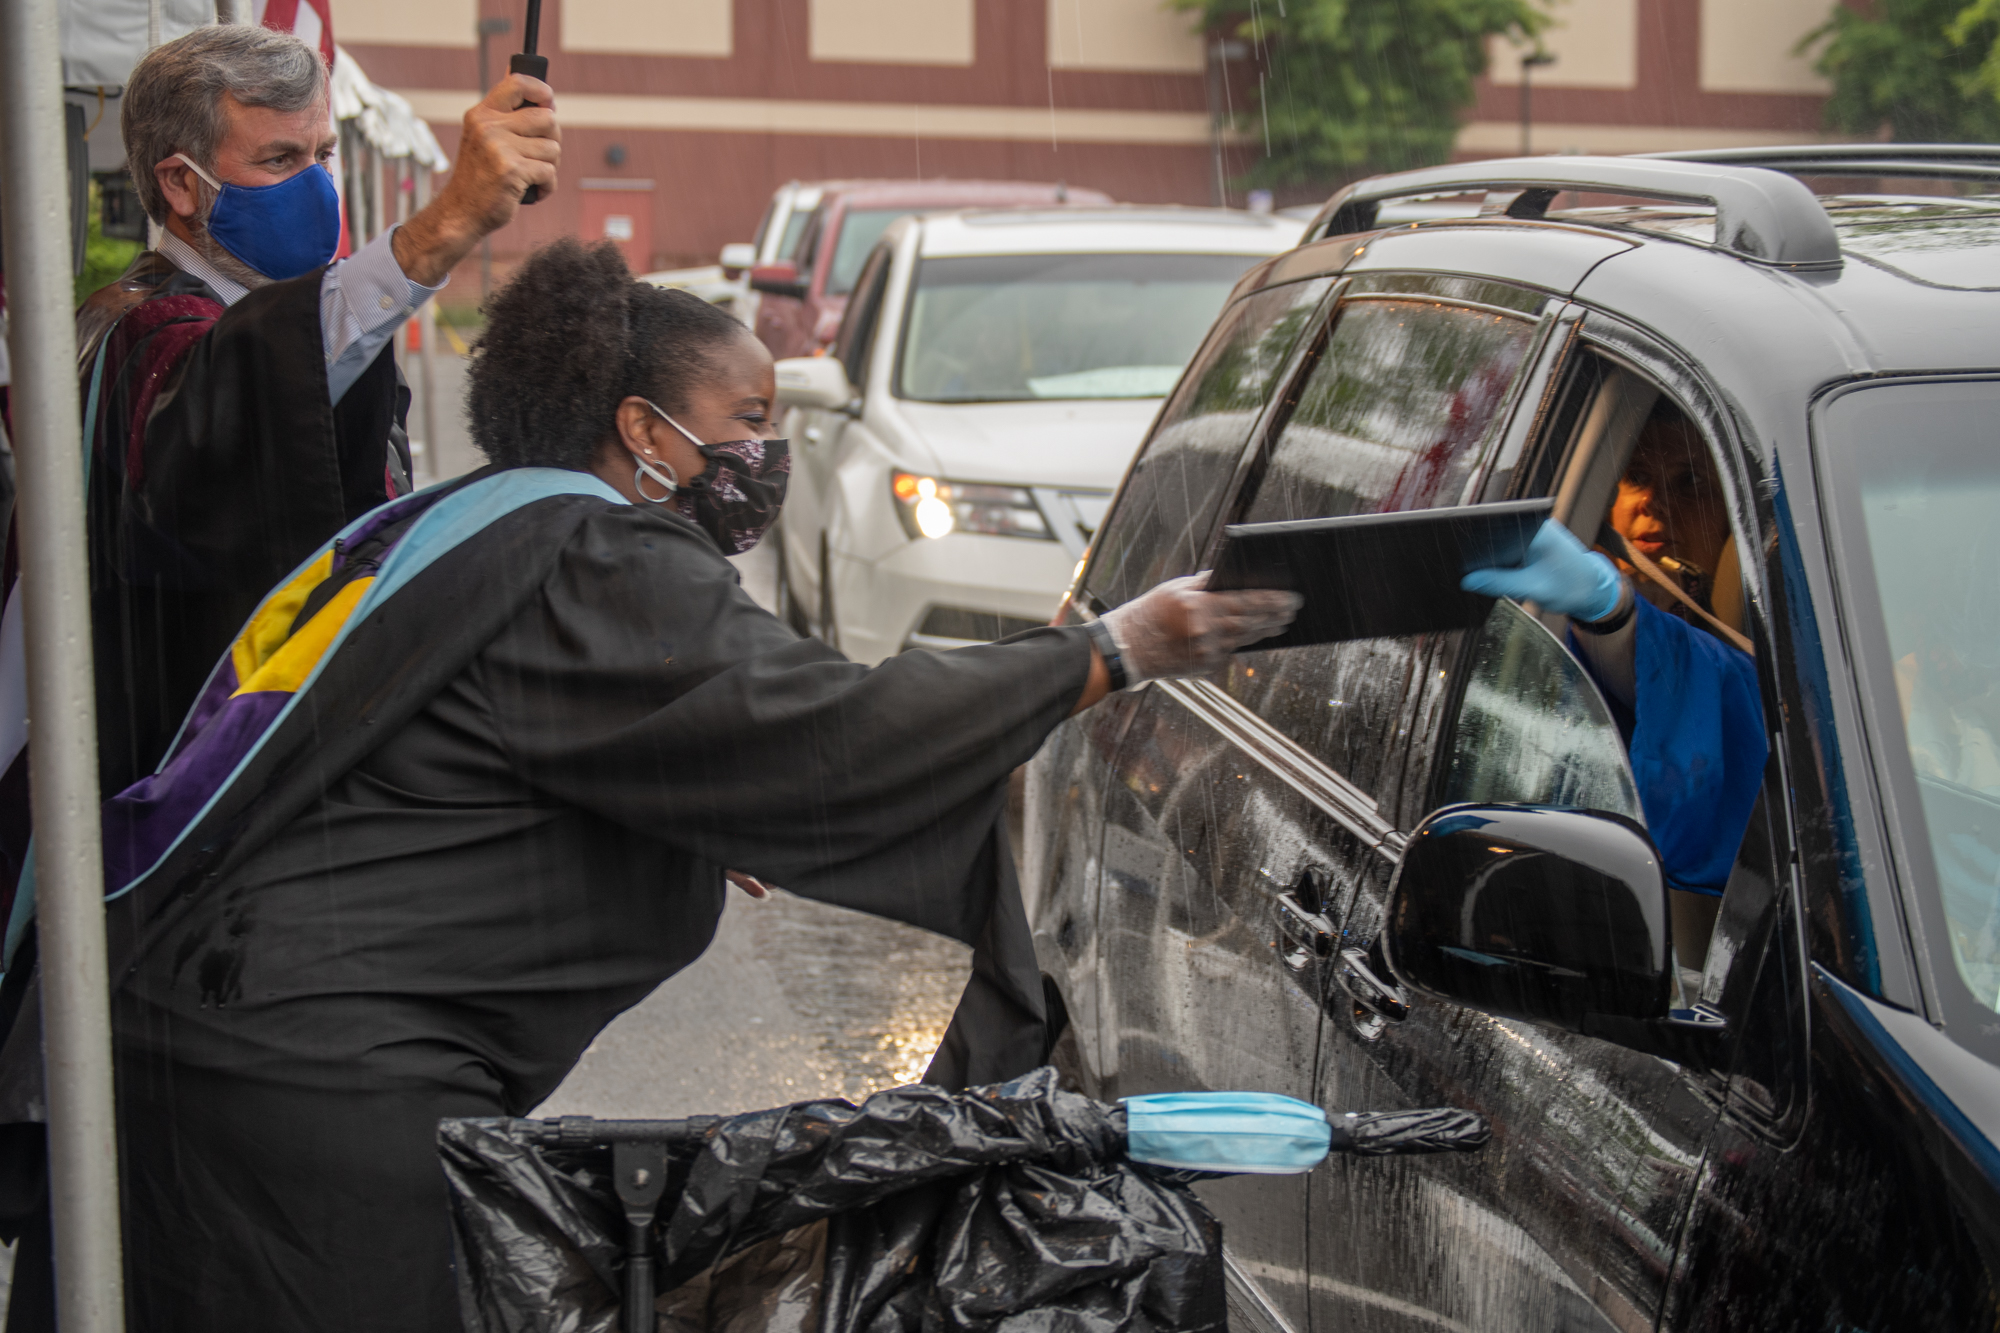 WNCN | Drive-thru graduations begin for Durham high schoolers